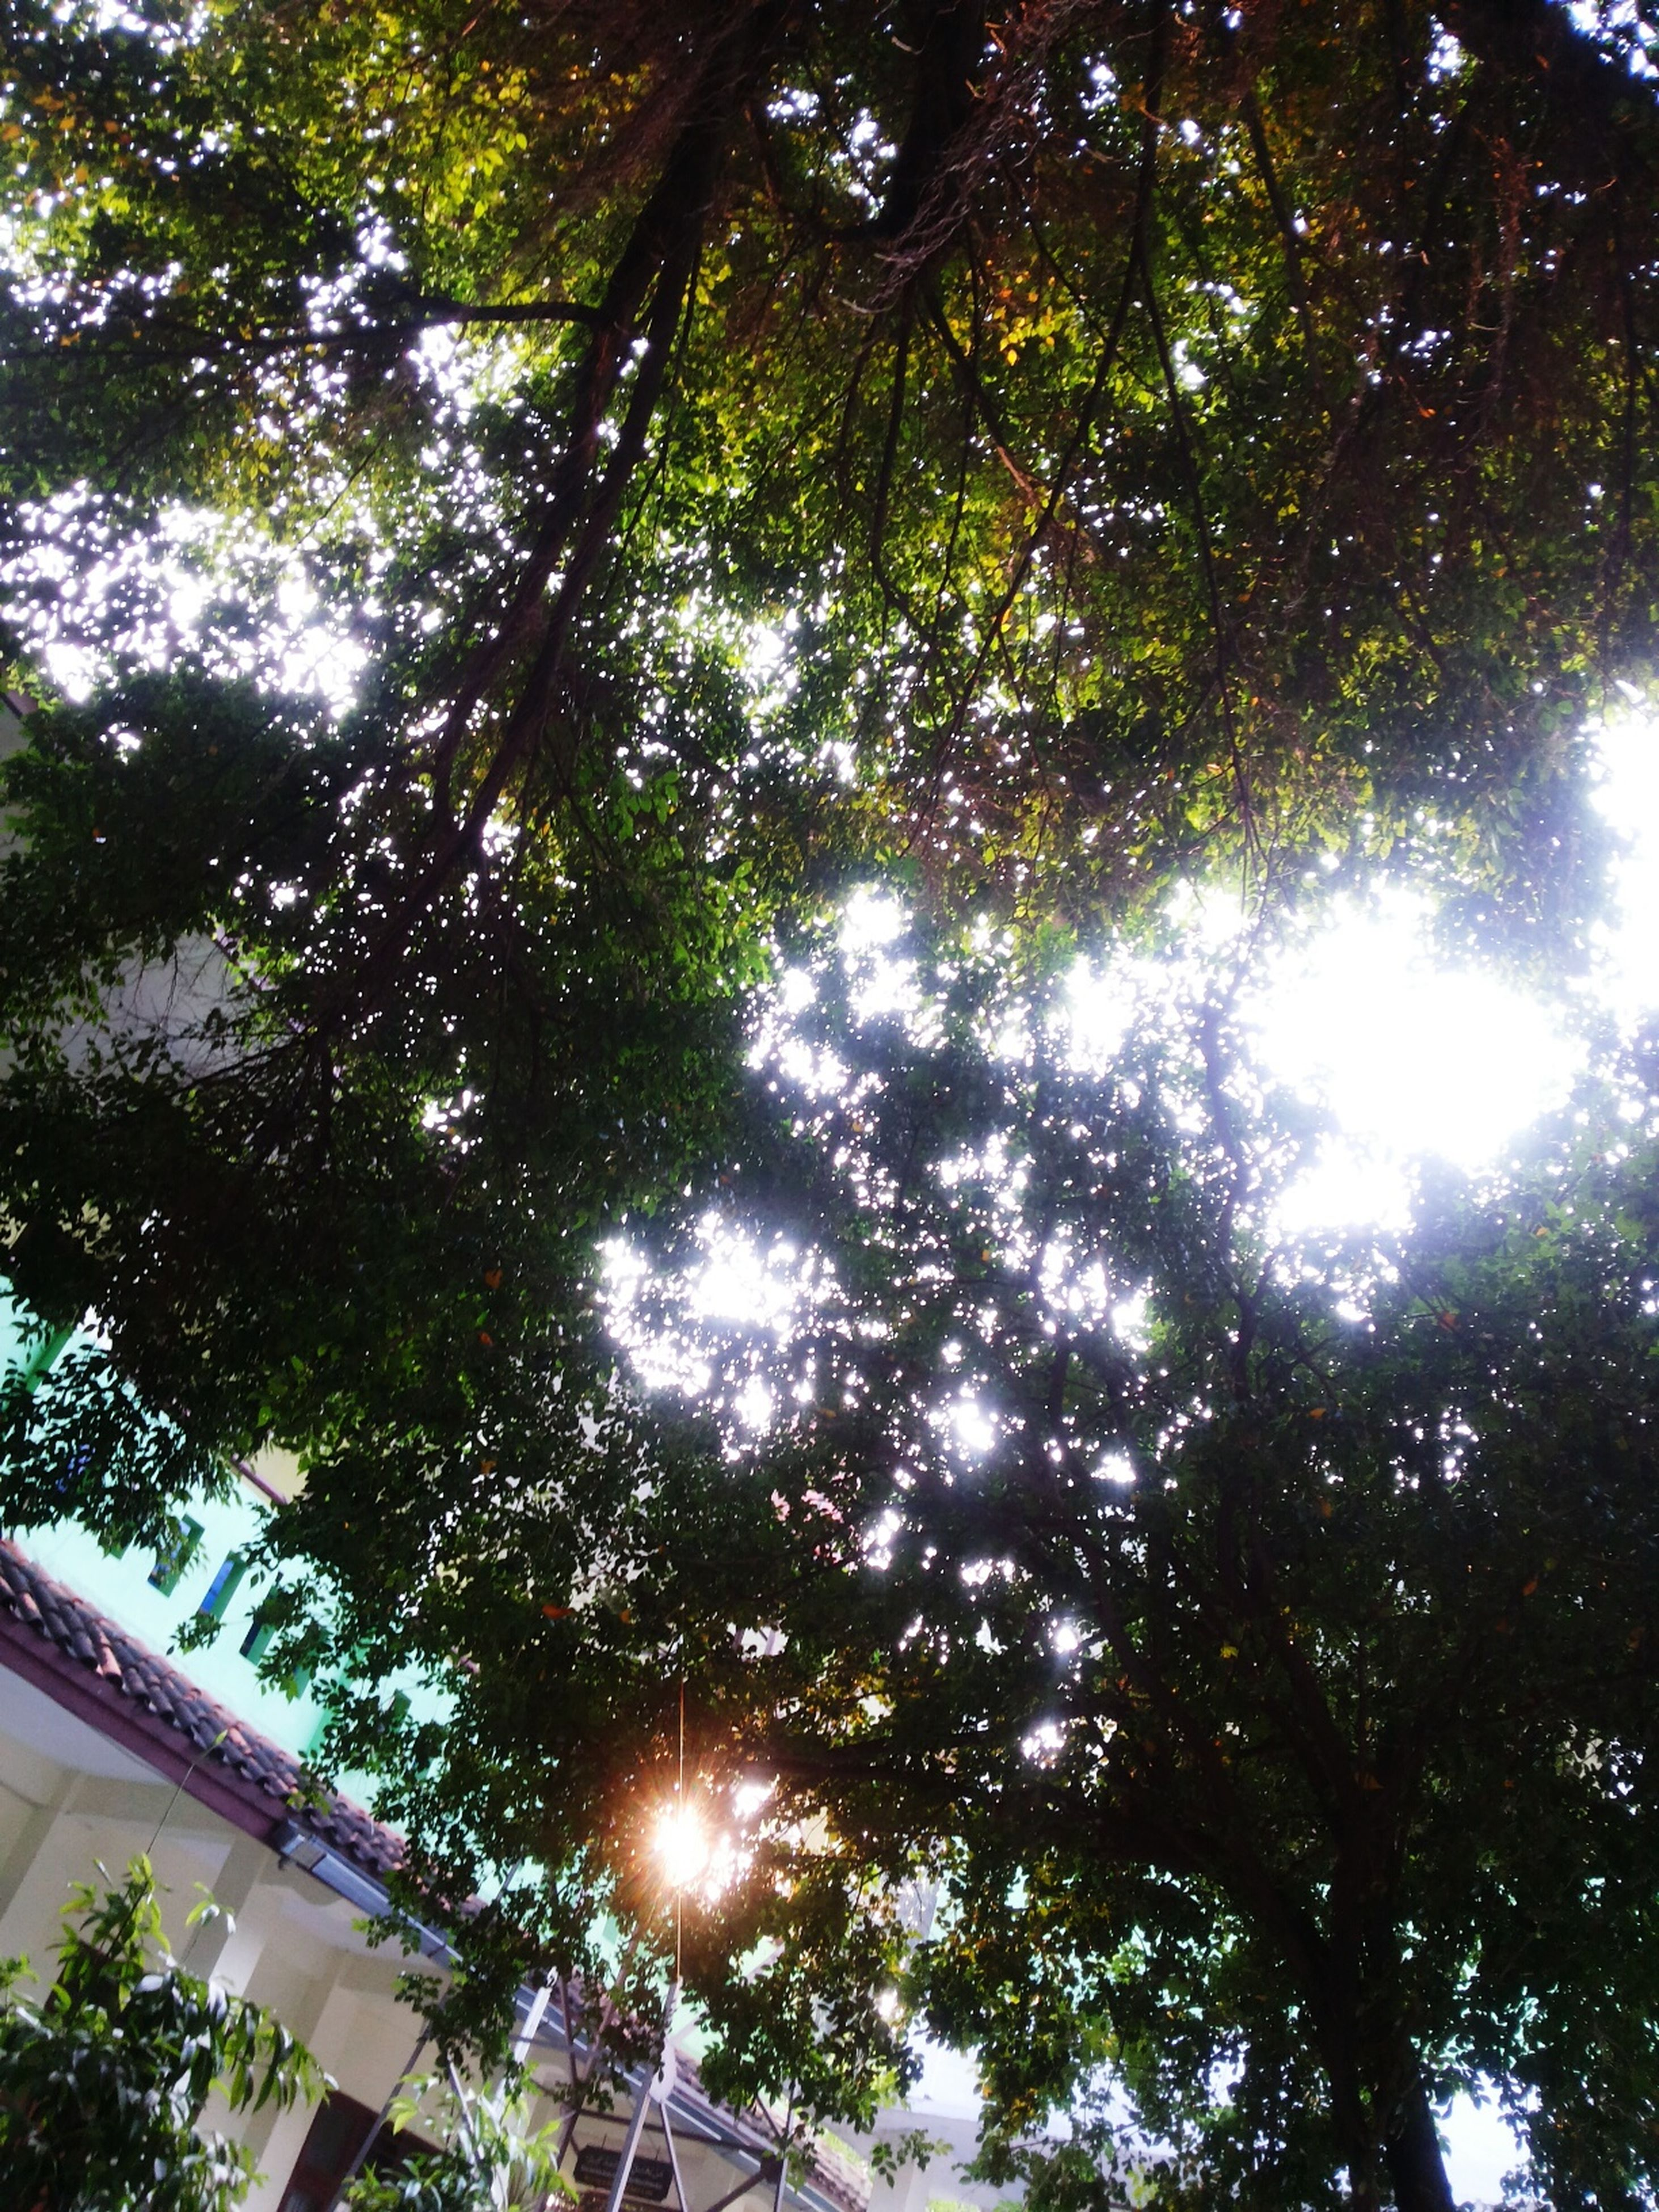 low angle view, tree, growth, branch, sunlight, nature, sunbeam, full frame, directly below, backgrounds, tranquility, lens flare, sun, beauty in nature, day, sky, no people, outdoors, tree trunk, leaf